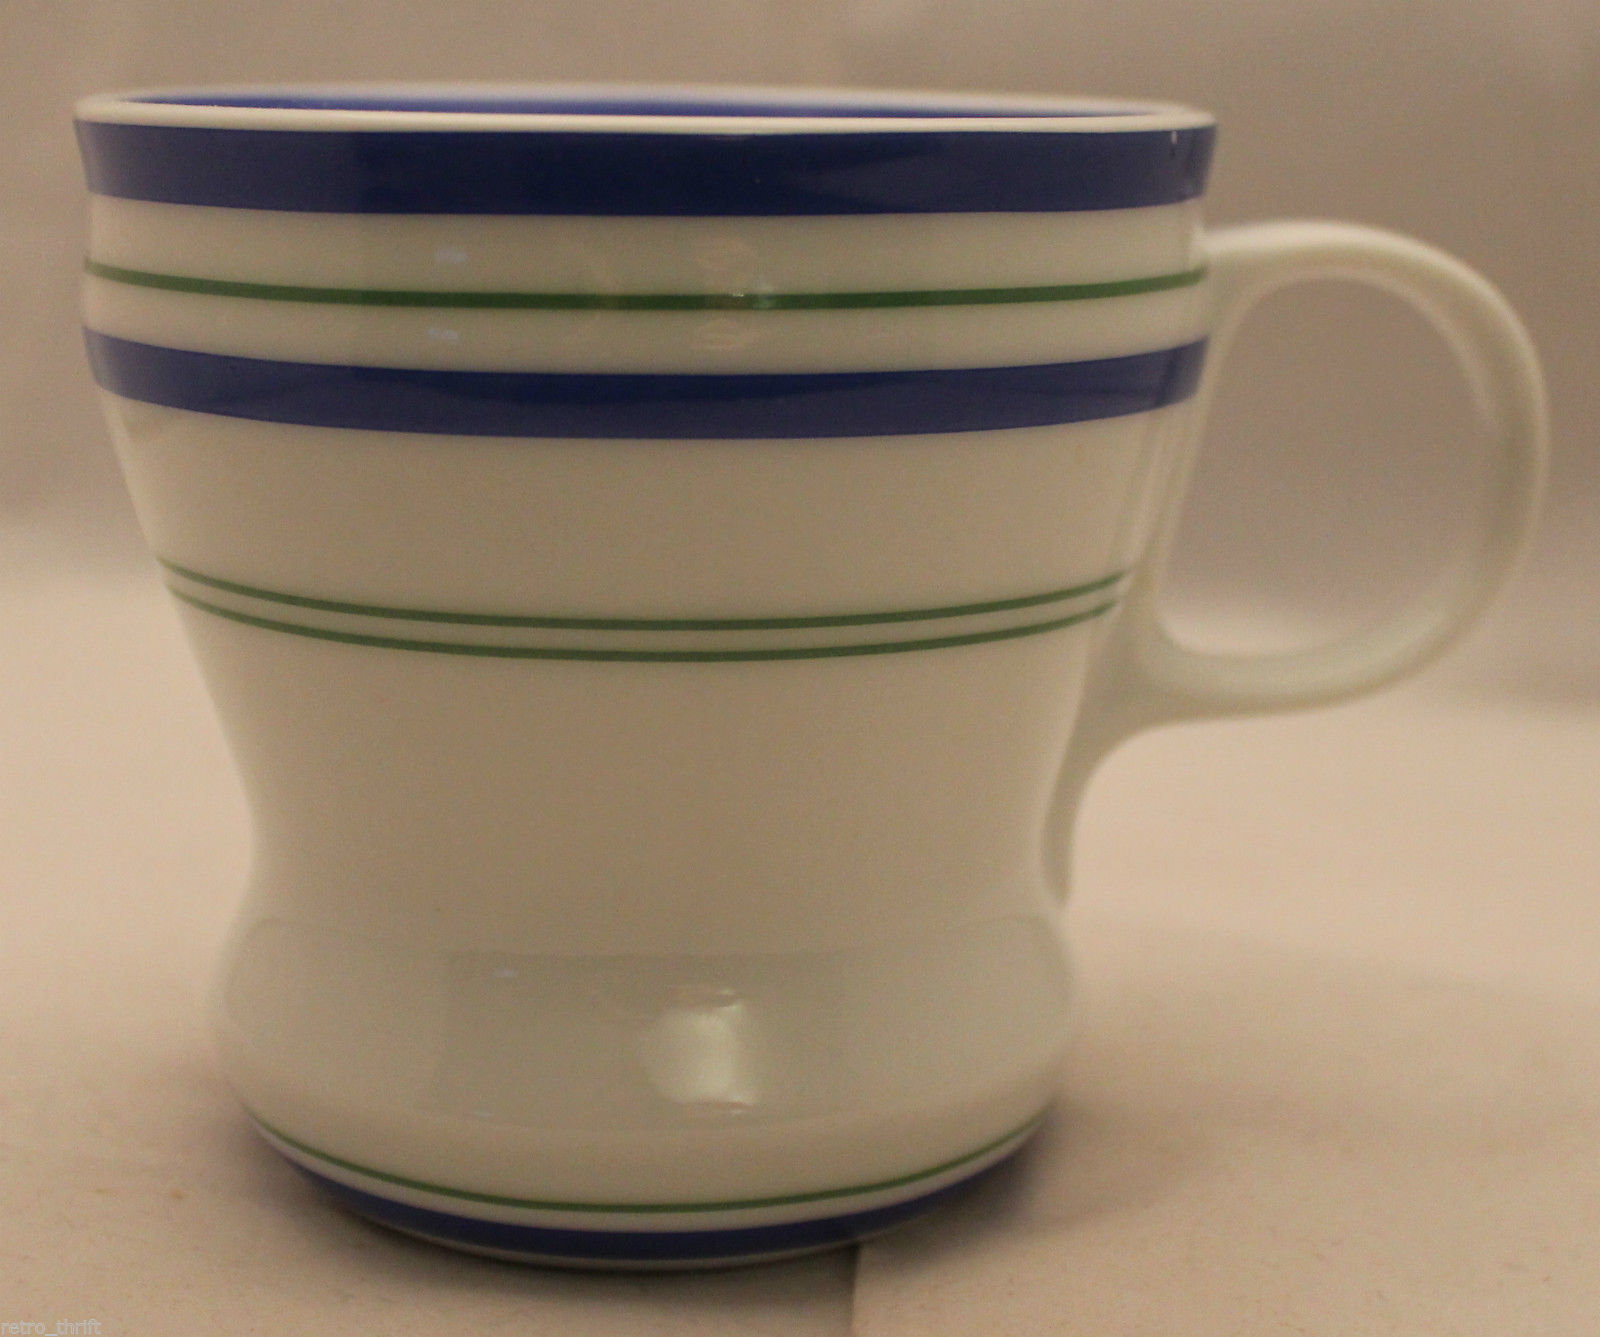 Primary image for Starbucks 2007 White Ceramic Coffee Tea Mug Cup With Green Blue Stripes 12oz